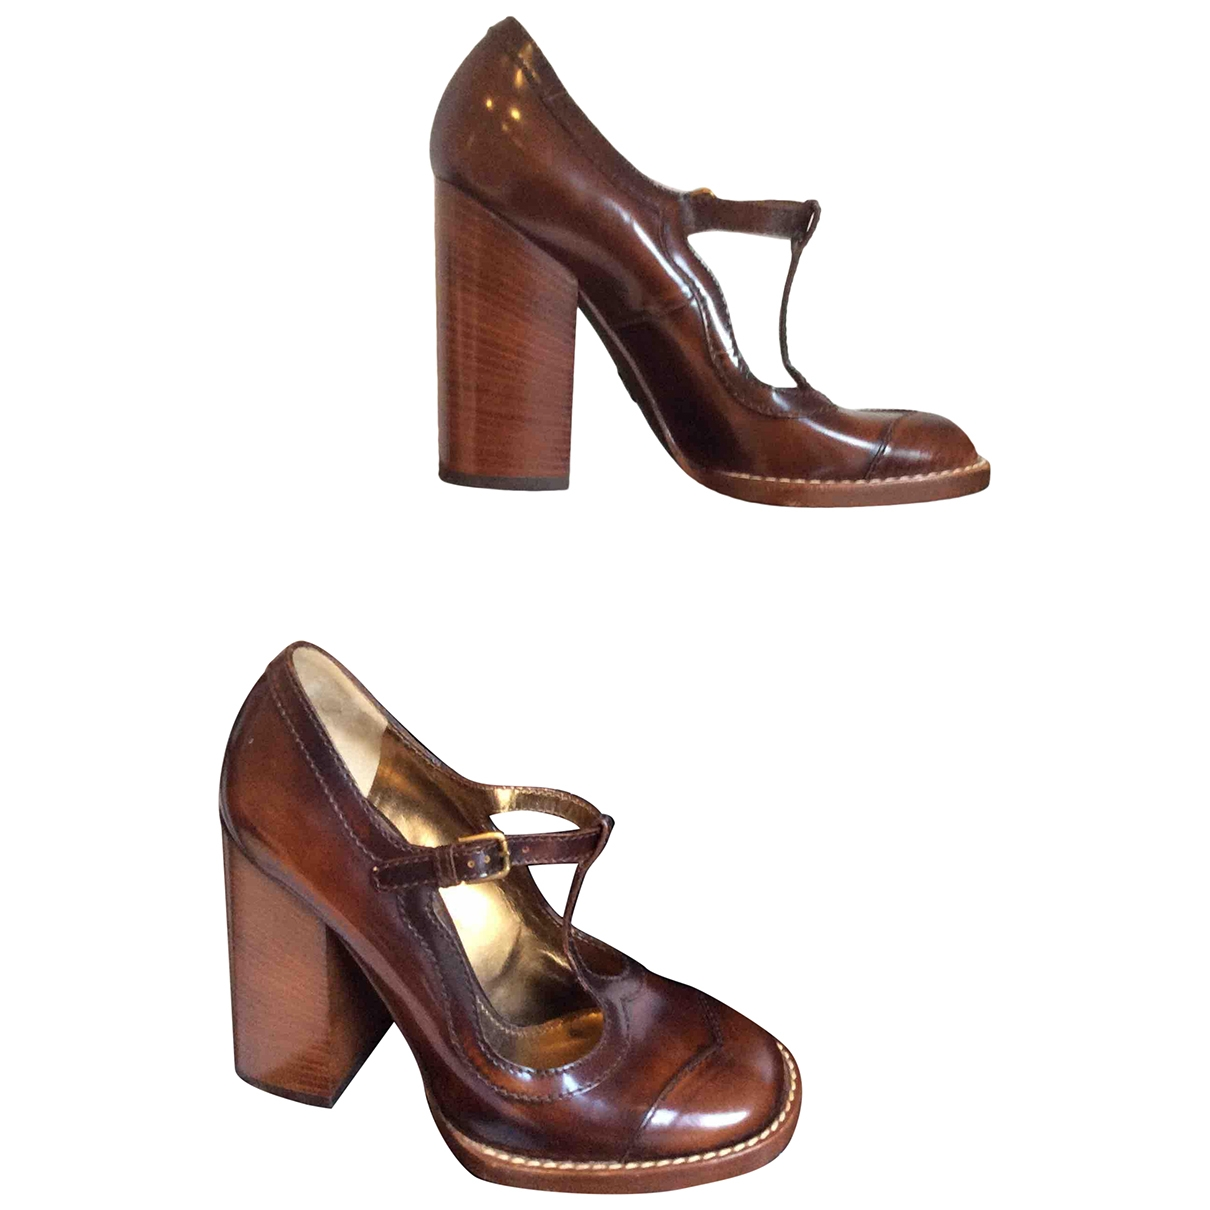 D&g \N Brown Leather Heels for Women 38 EU